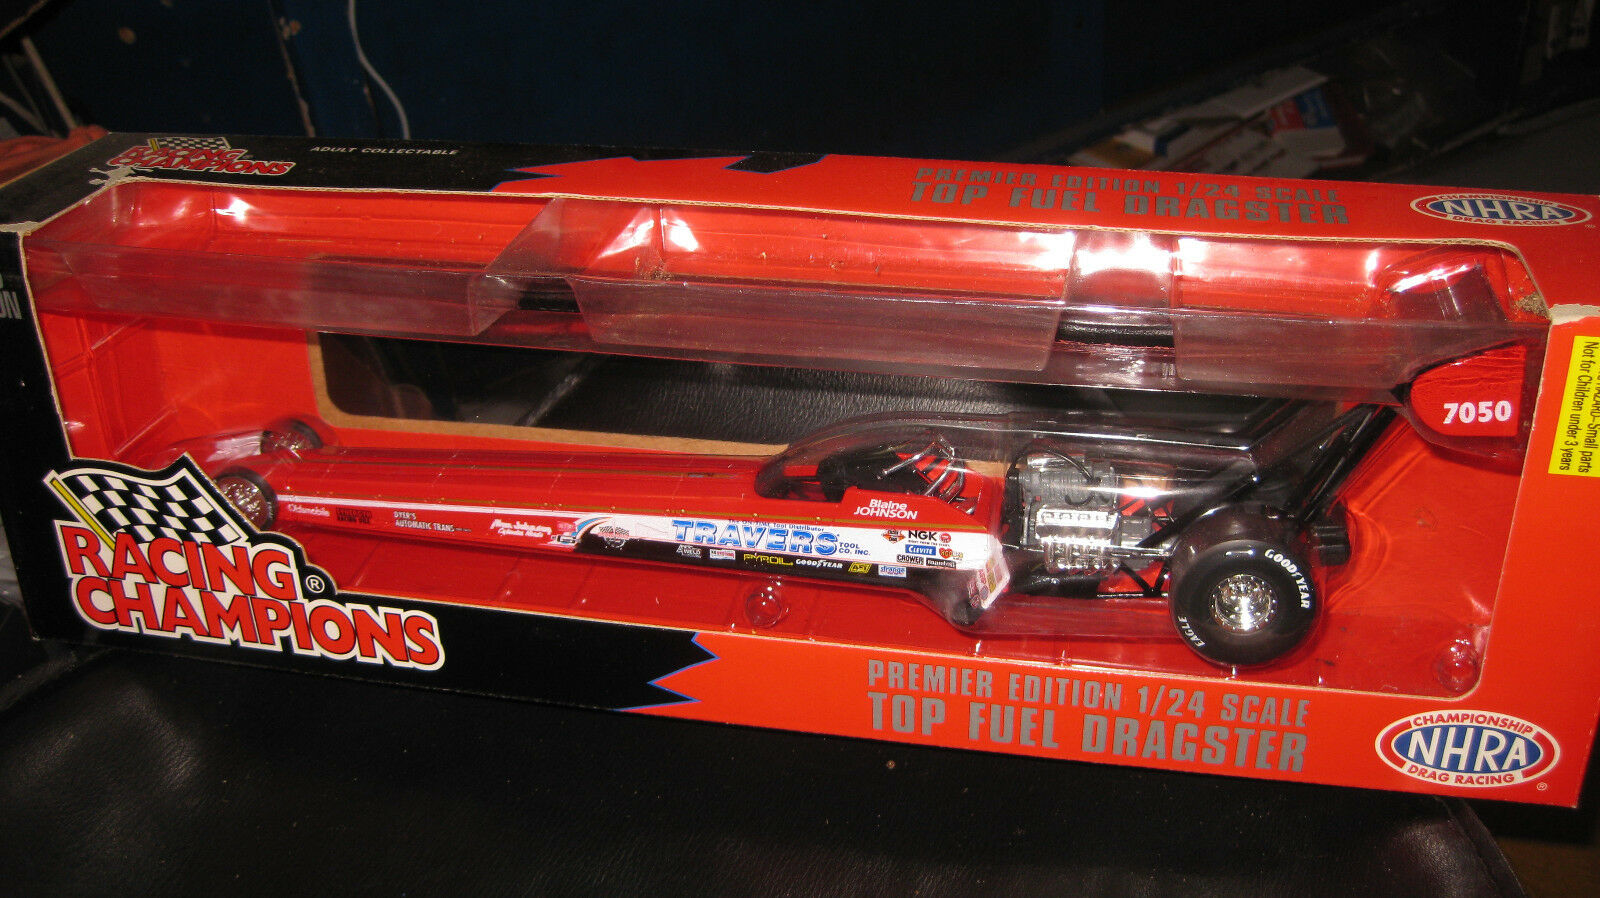 1.24 RACING CHAMPIONS NHRA TOP FUEL DRAGSTER DRAGSTER DRAGSTER 1996 TRAVERS  BLAINE JOHNSON   G 992b89